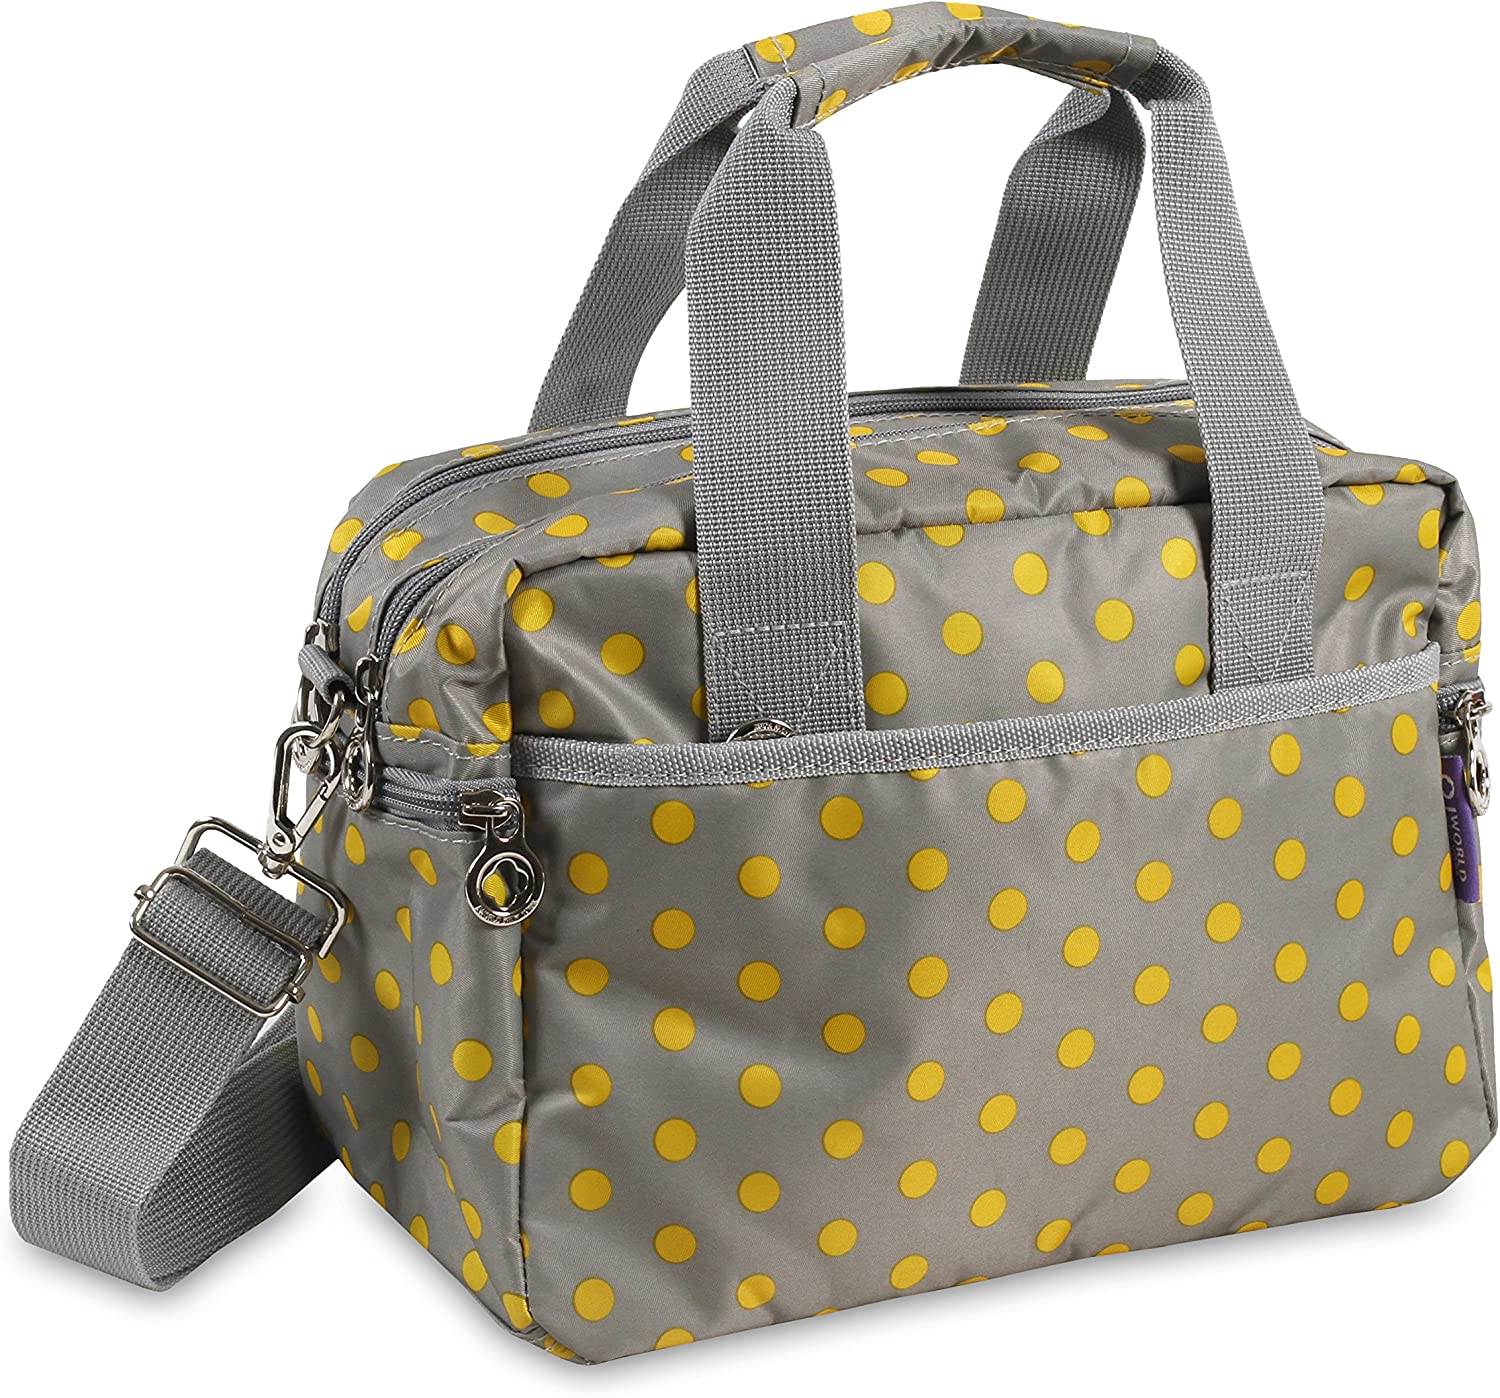 J World New York Aby Bag Travel Tote, Candy Buttons, One Size